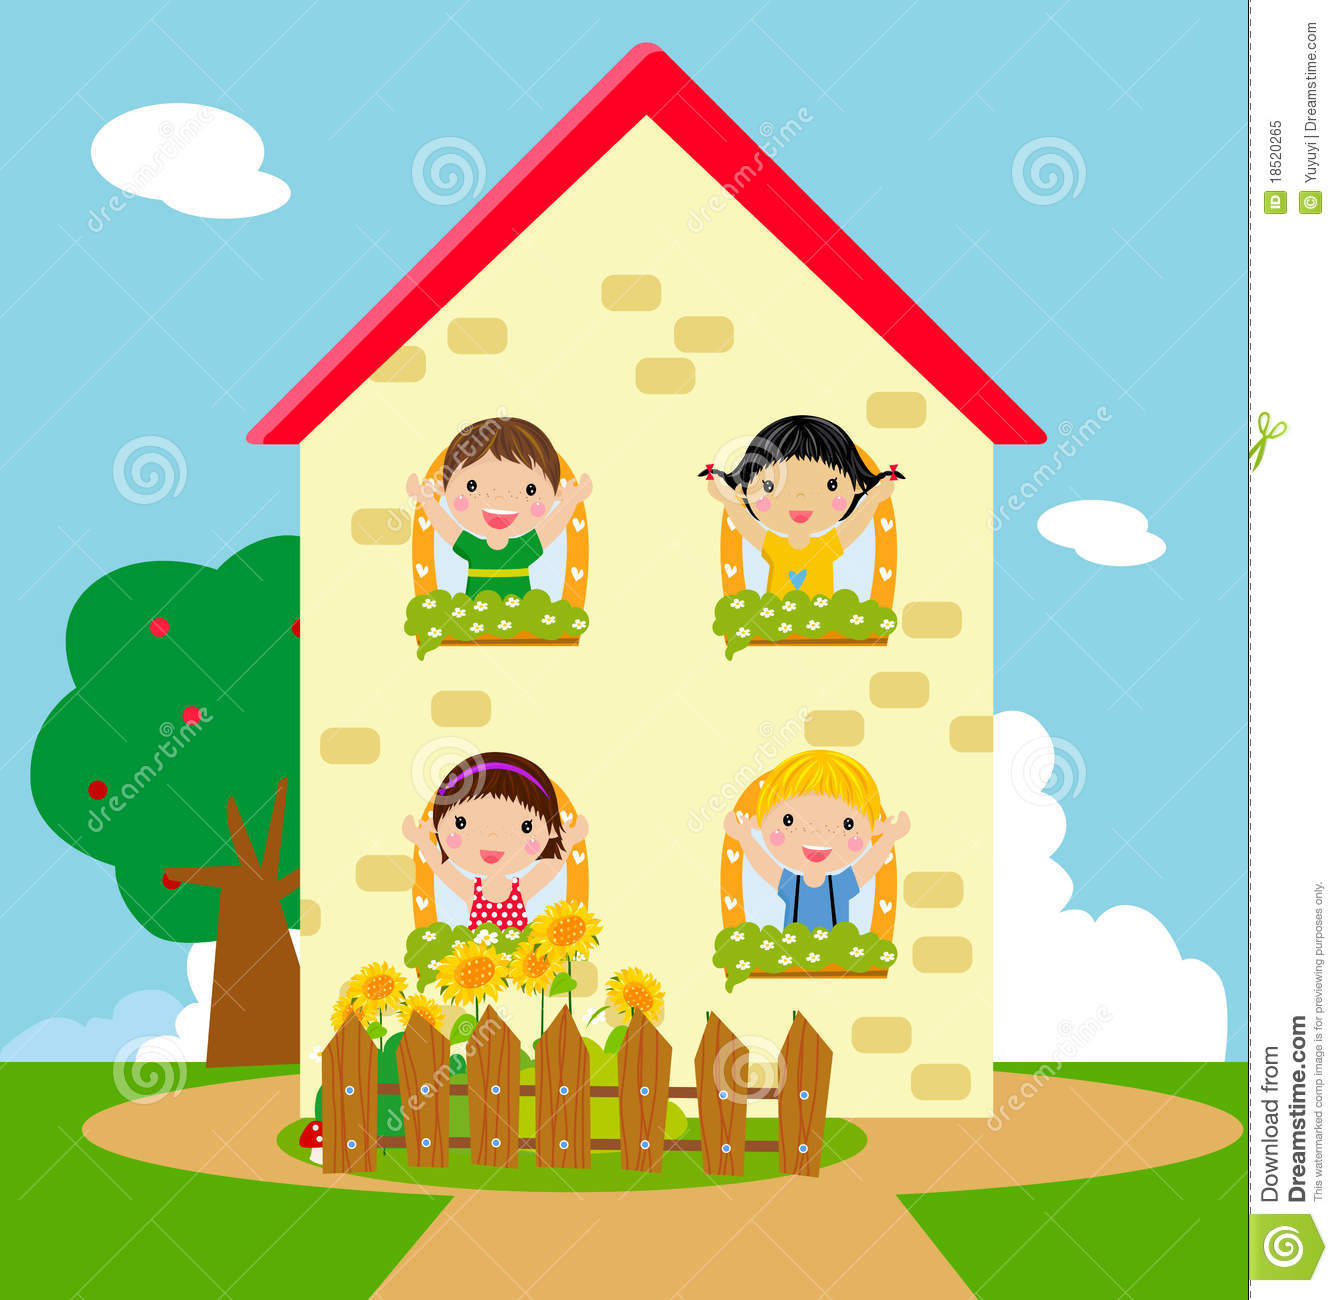 Kids and house royalty free stock photo image 18520265 for House pictures for kids